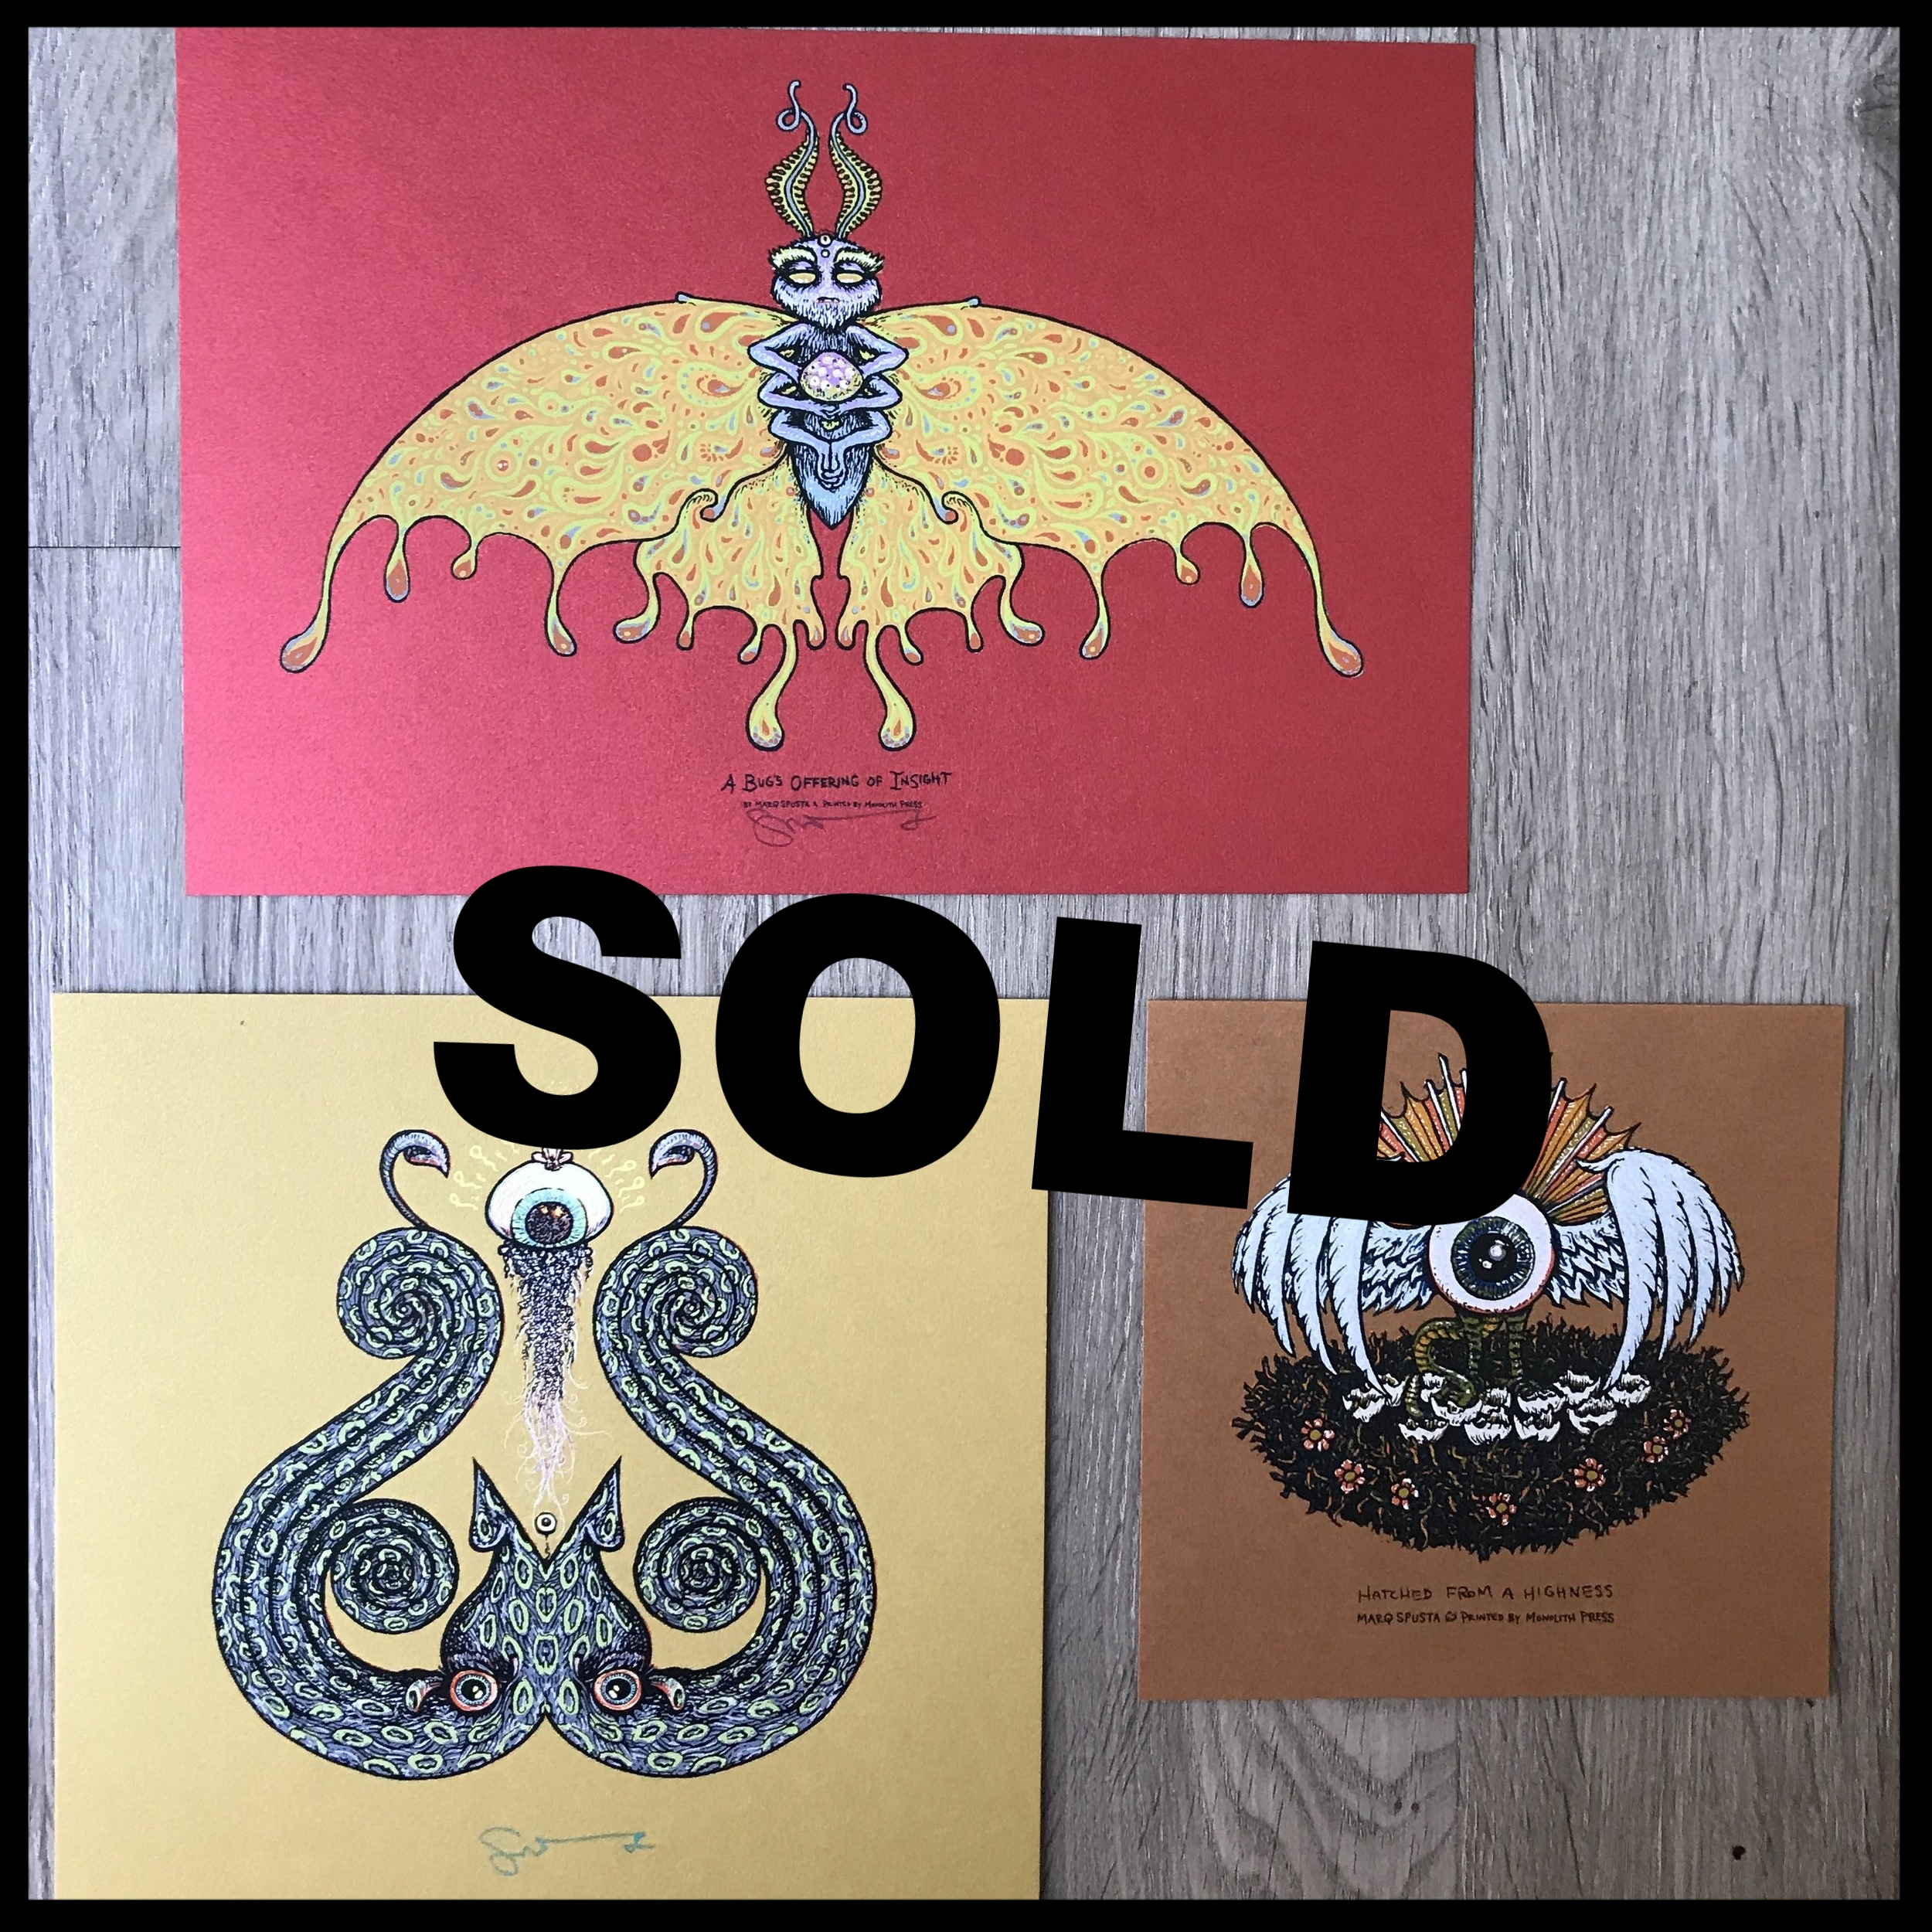 "$75 - PACK F - A Bug's Offering of Insight 6"" x 9"" + Hatched from a Highness 5"" x 5"" + Squiddy 7"" x 7"""